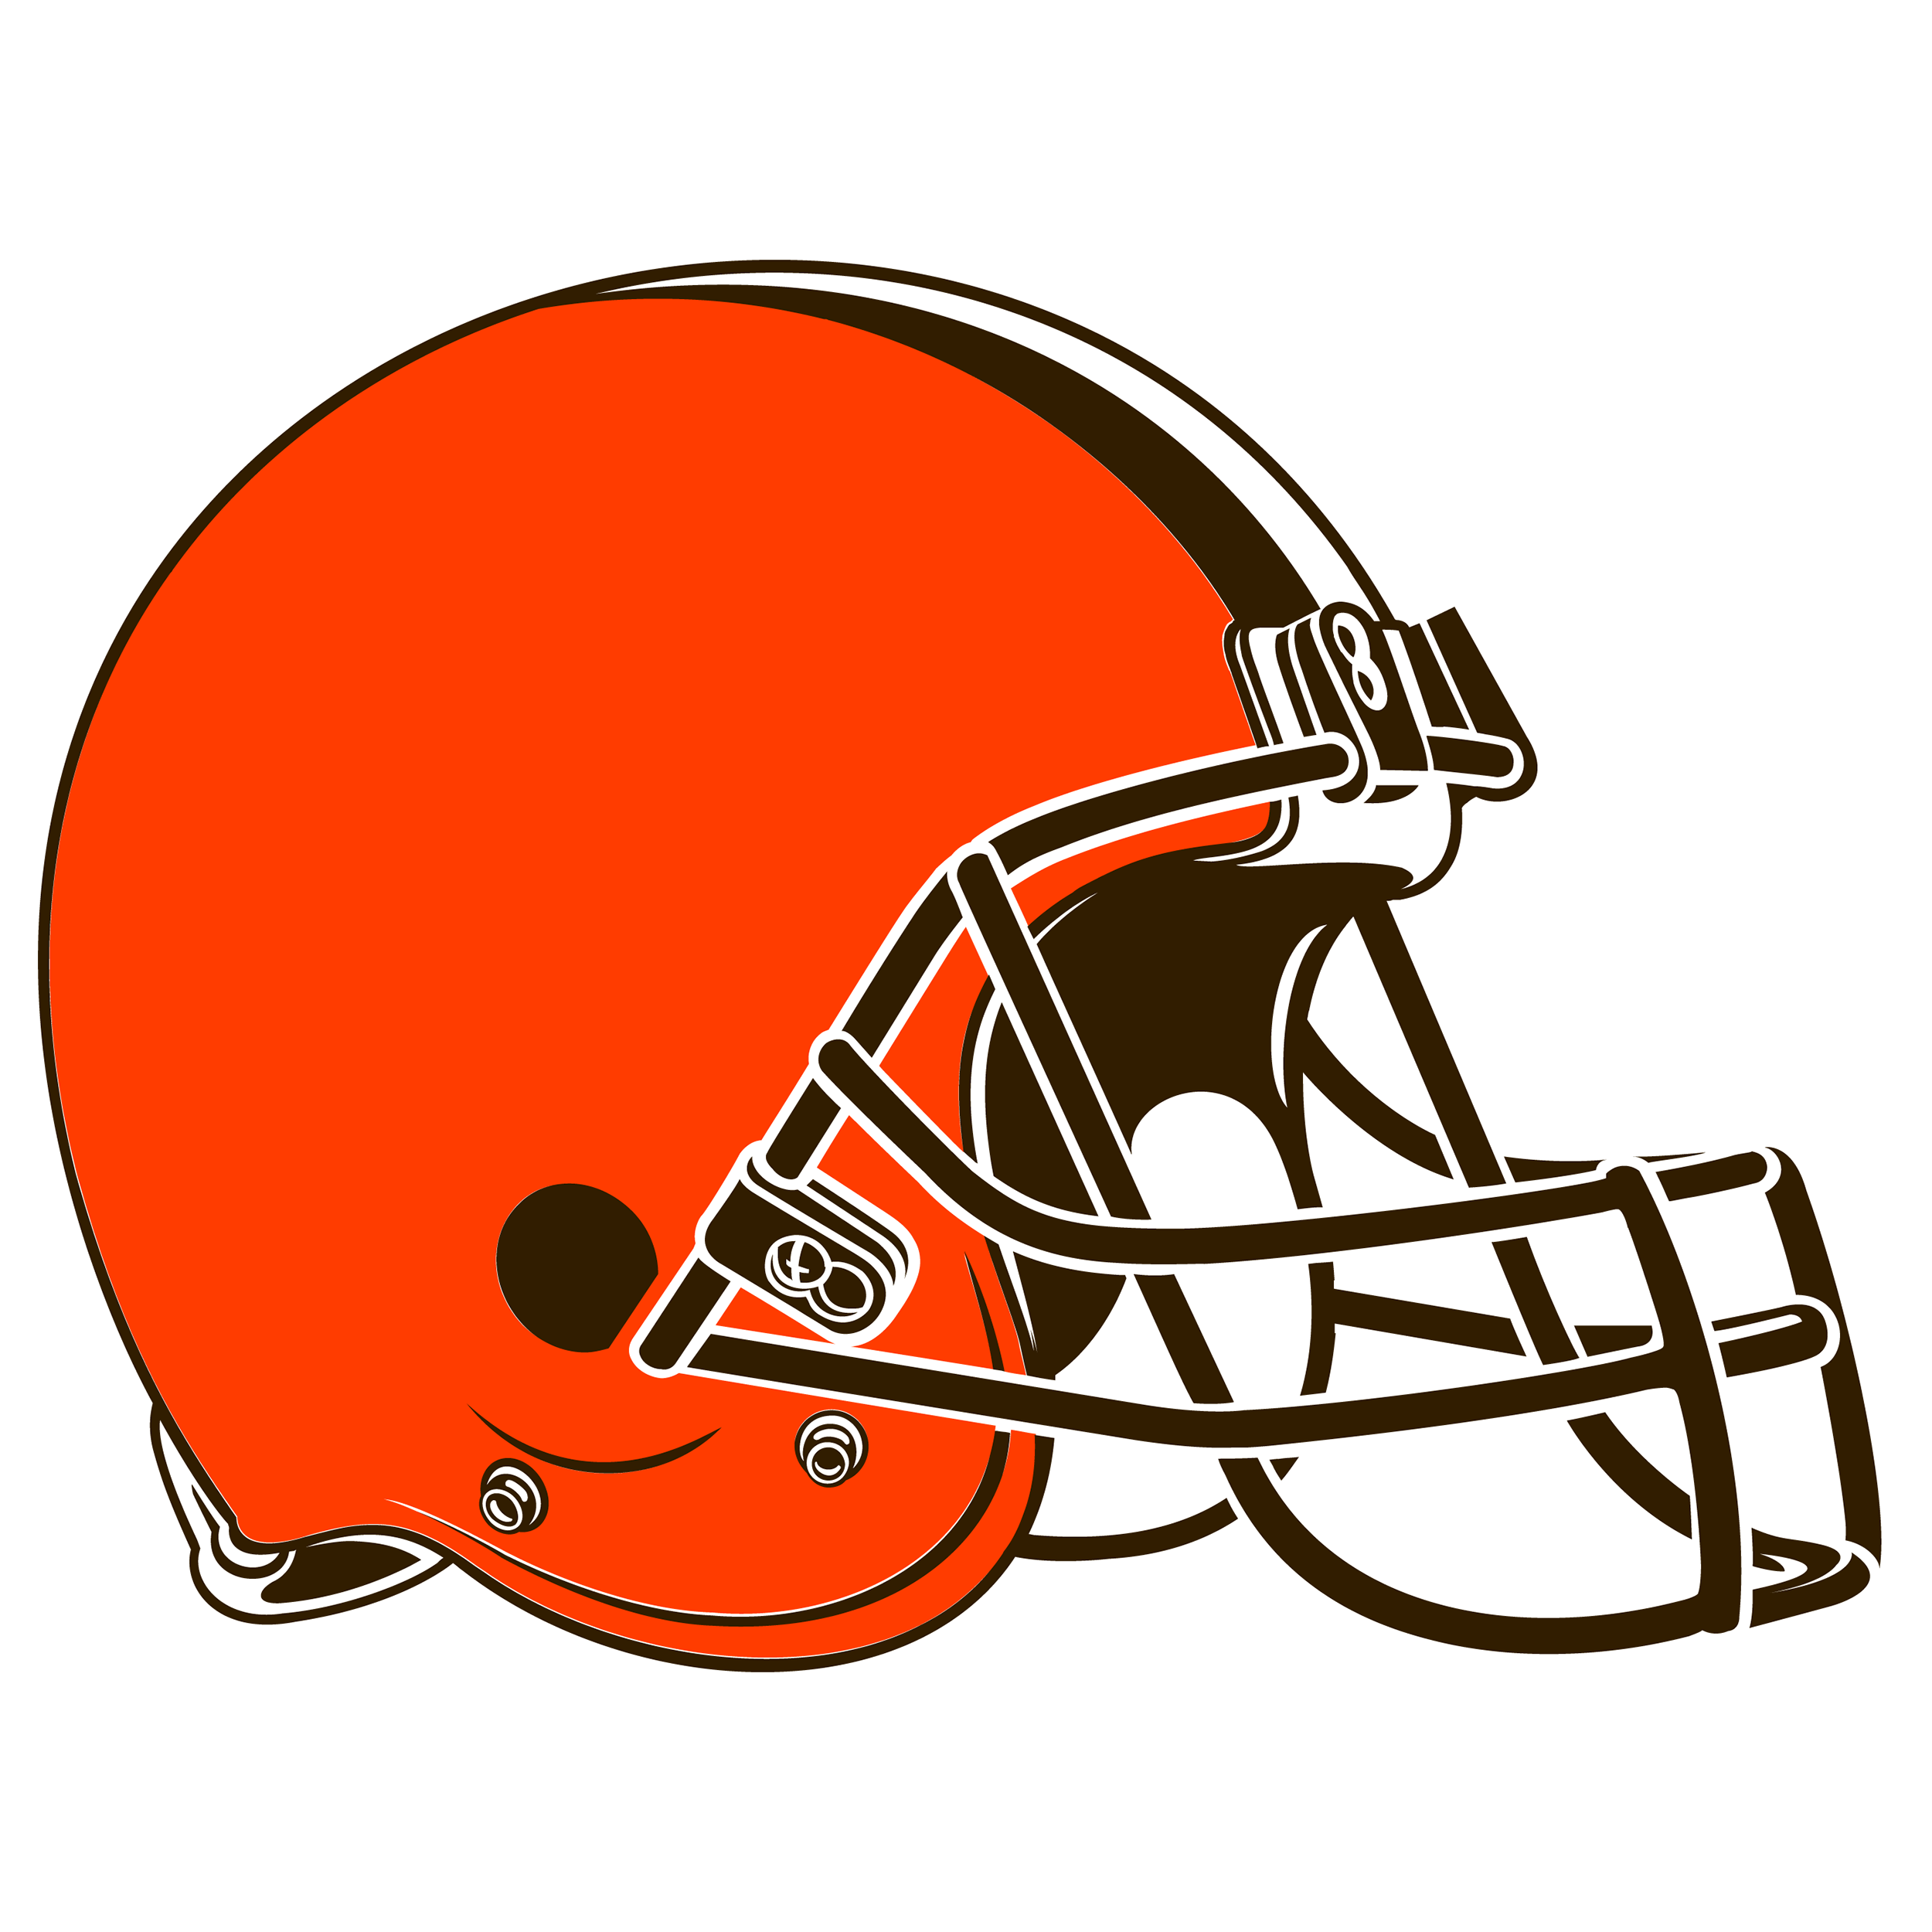 Cleveland Browns Logo - Football Logos